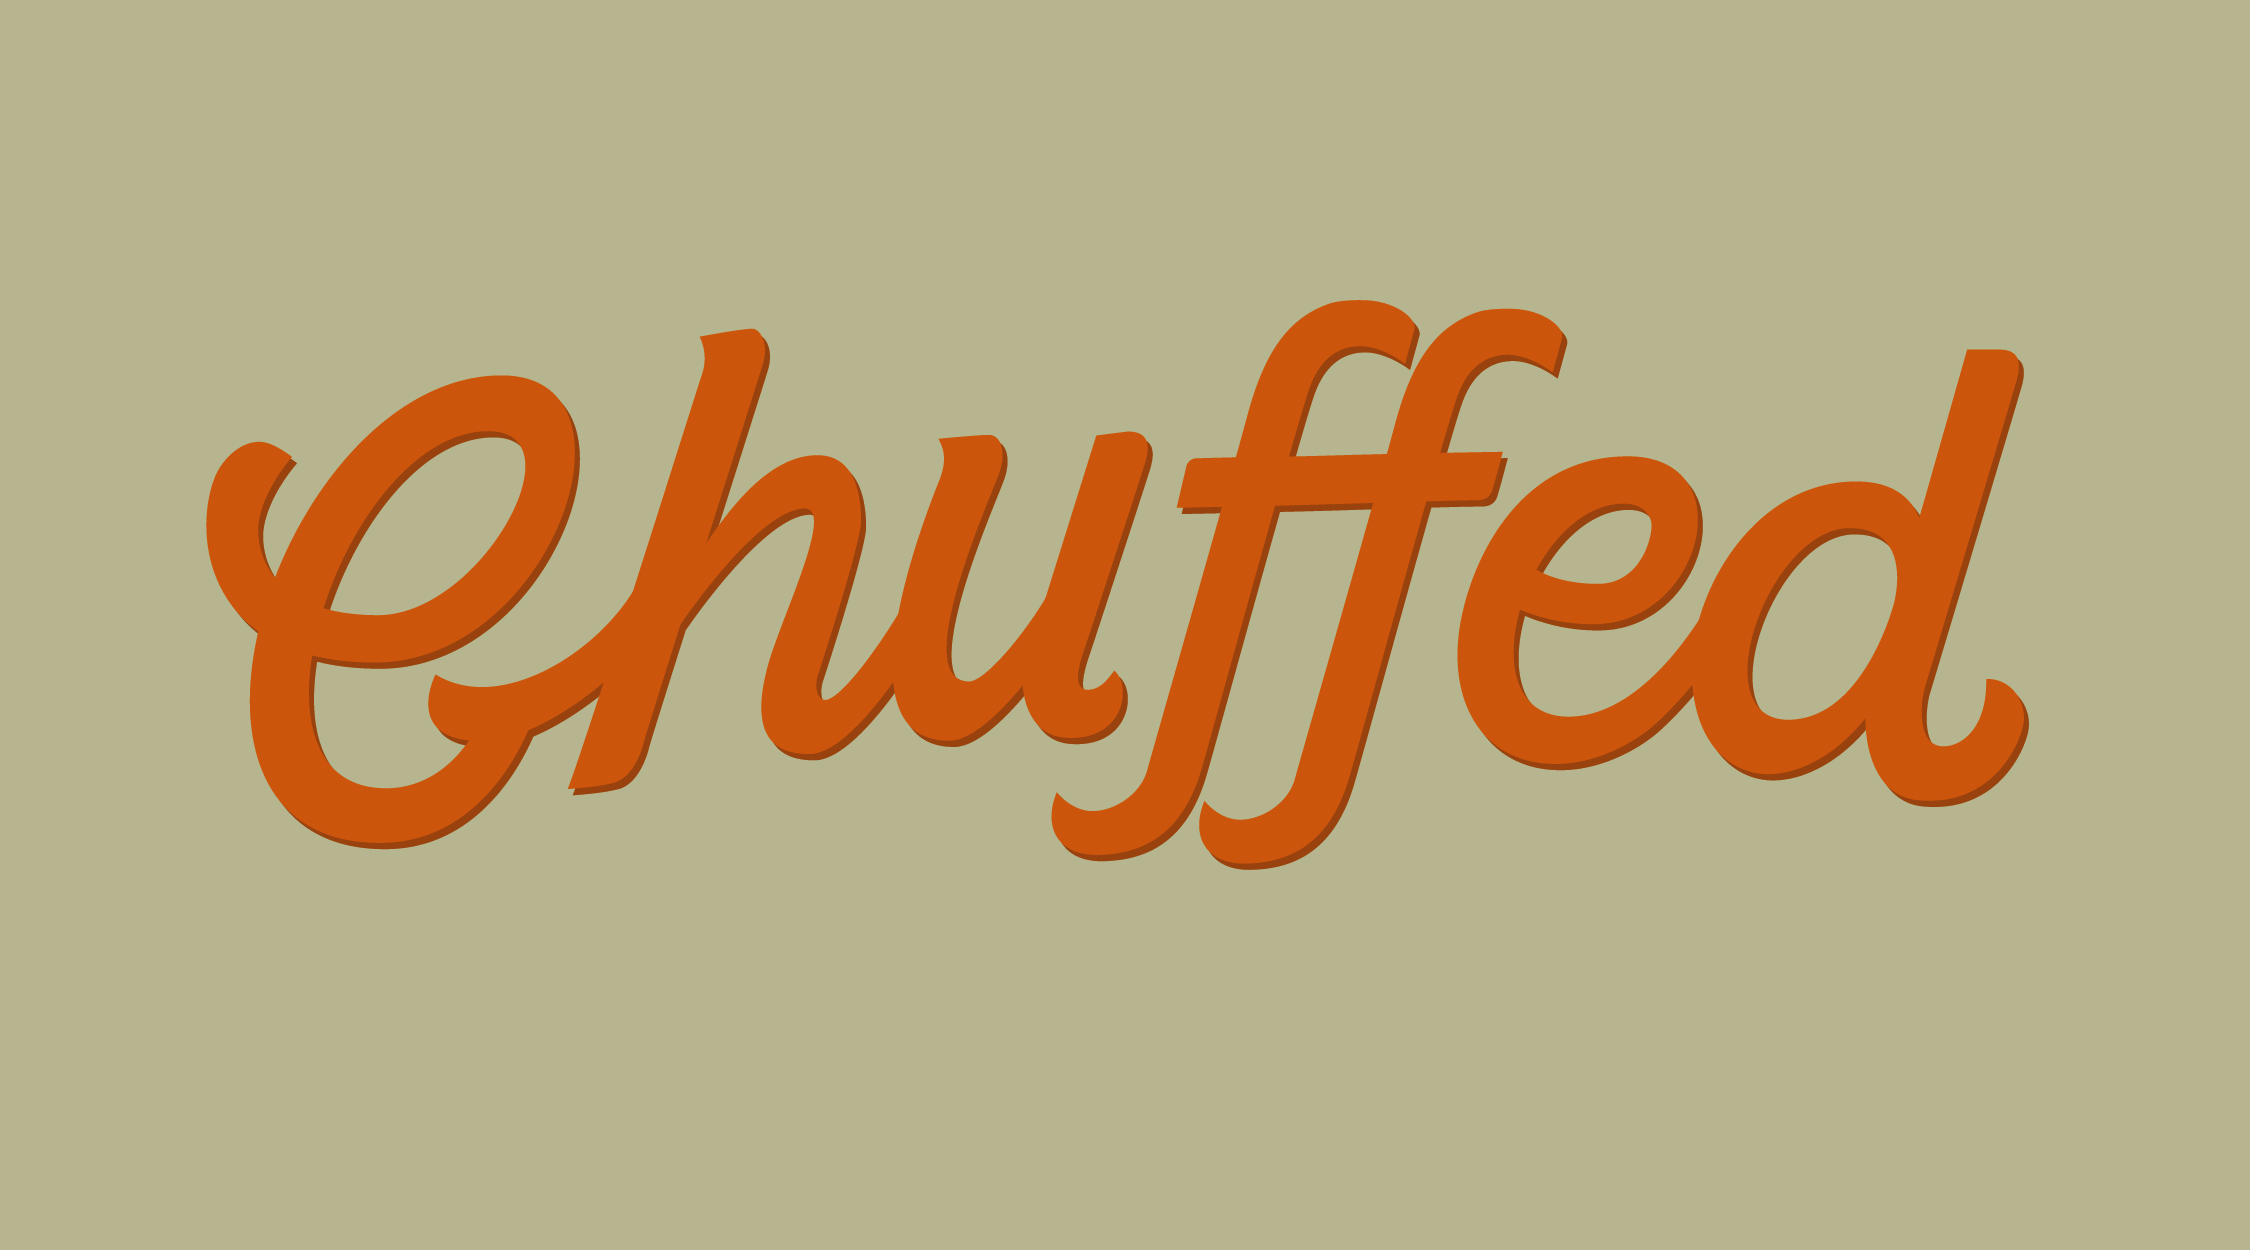 Chuffed wordmark